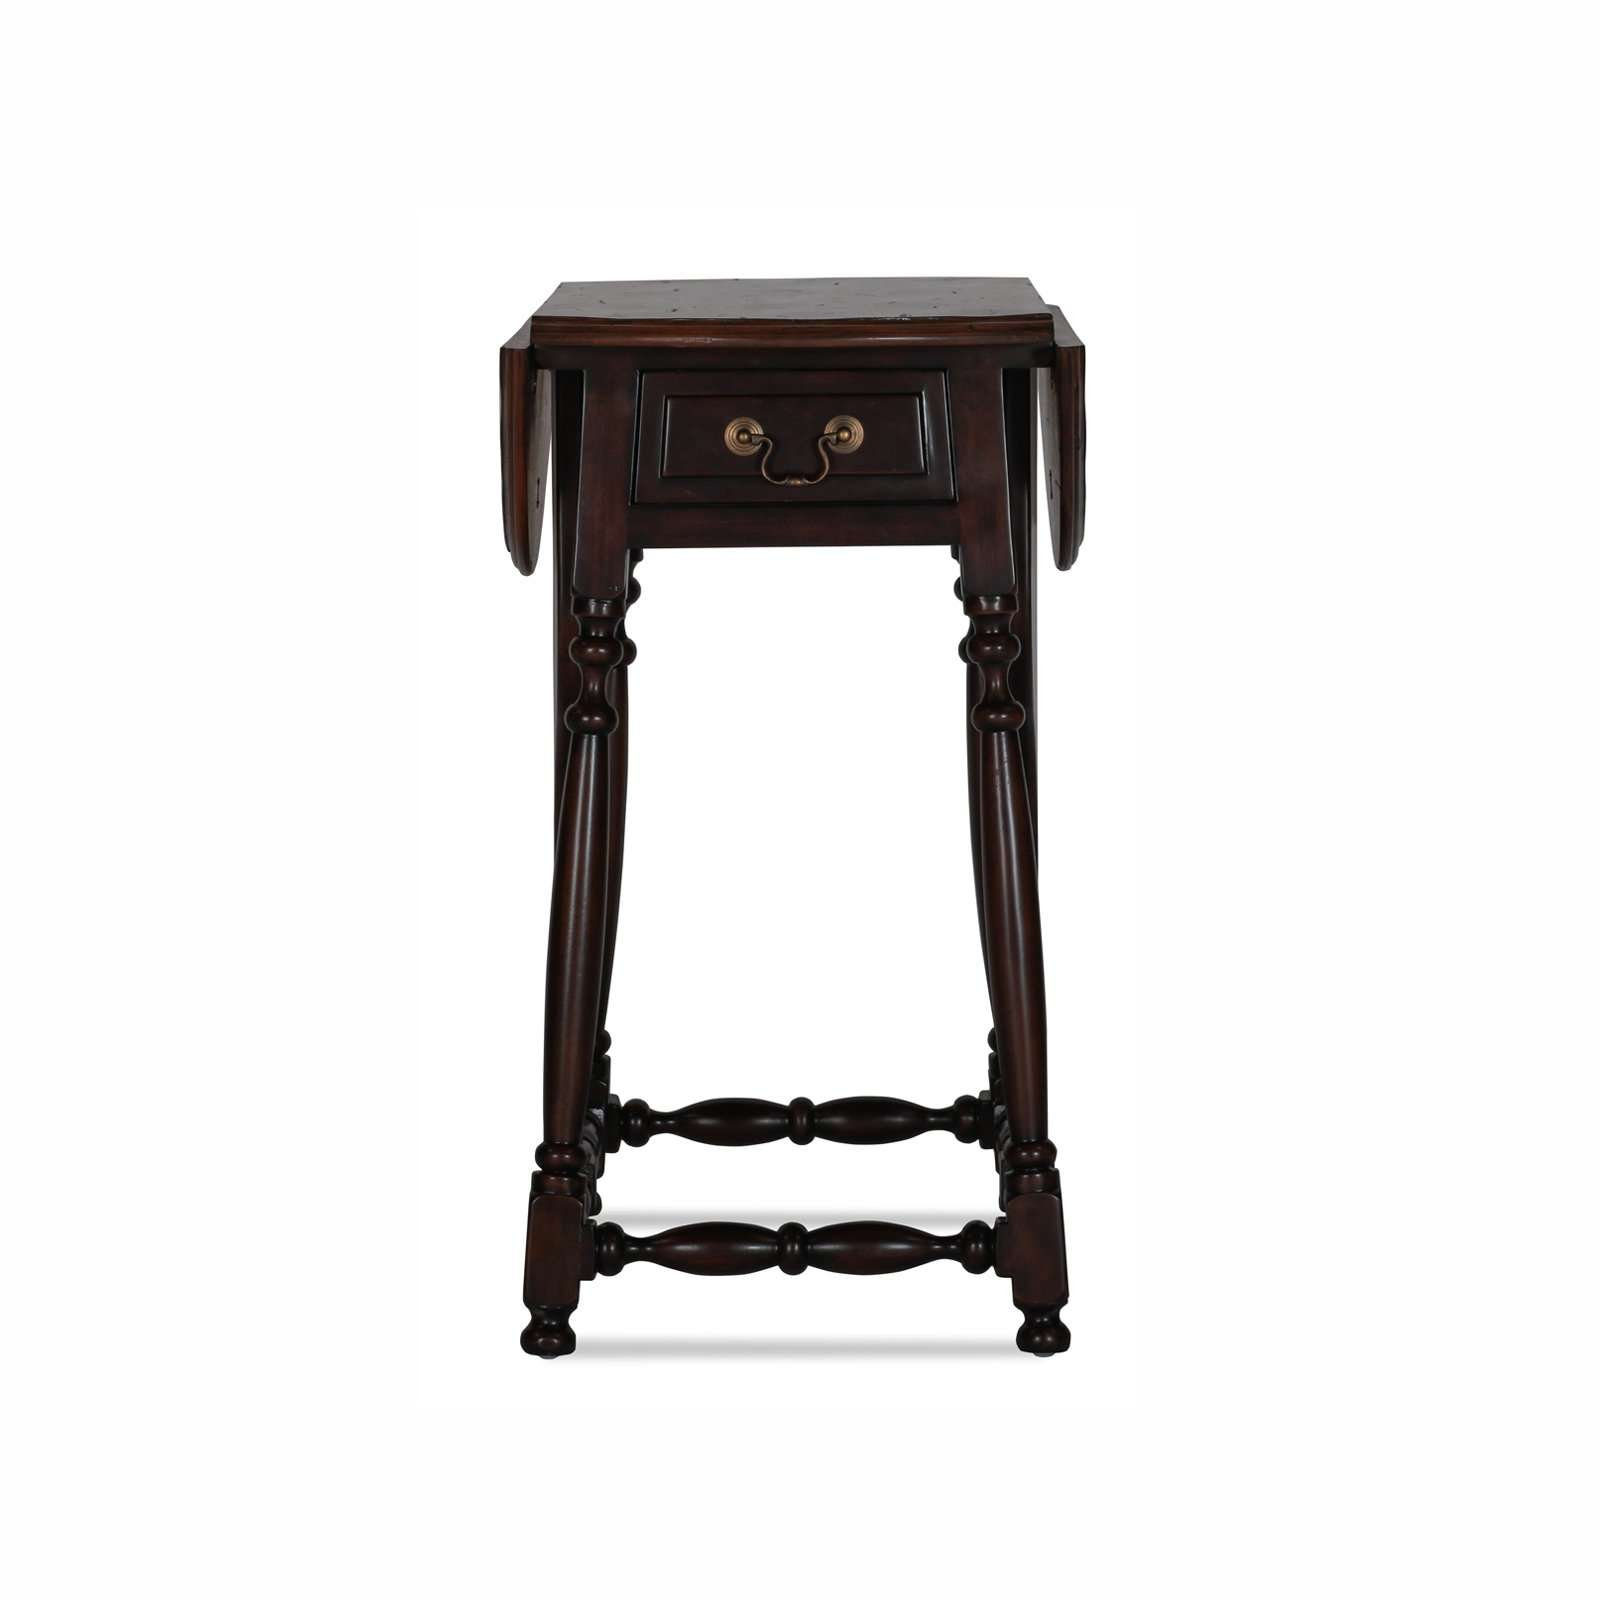 LAKE HOUSE GATELEG TABLE